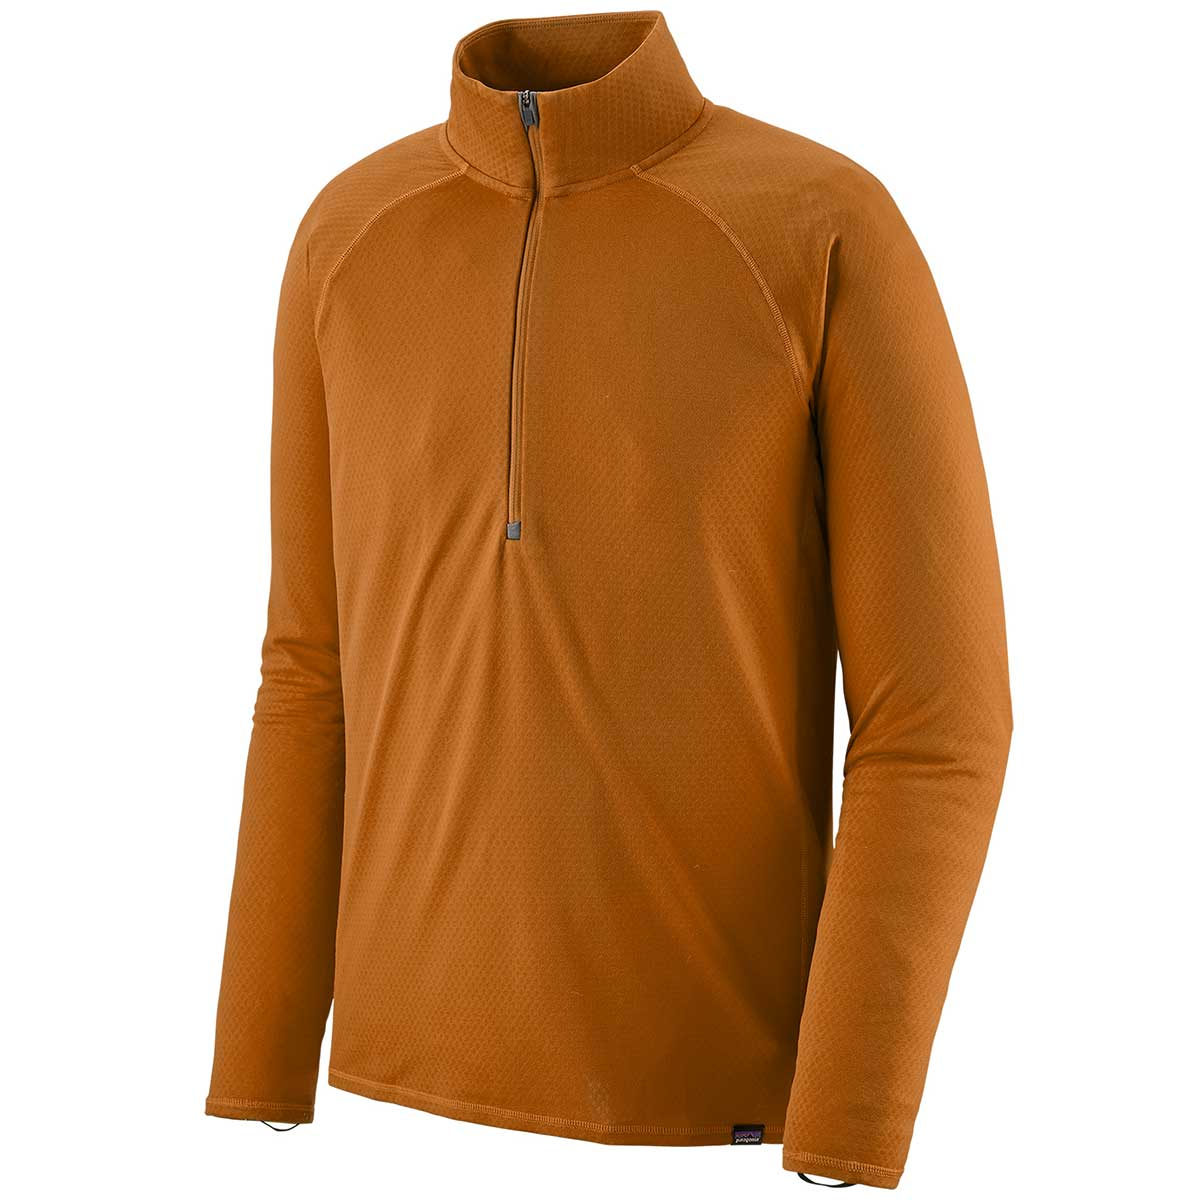 Patagonia men's Capilene Midweight Zip-Neck in Hammonds Gold front view